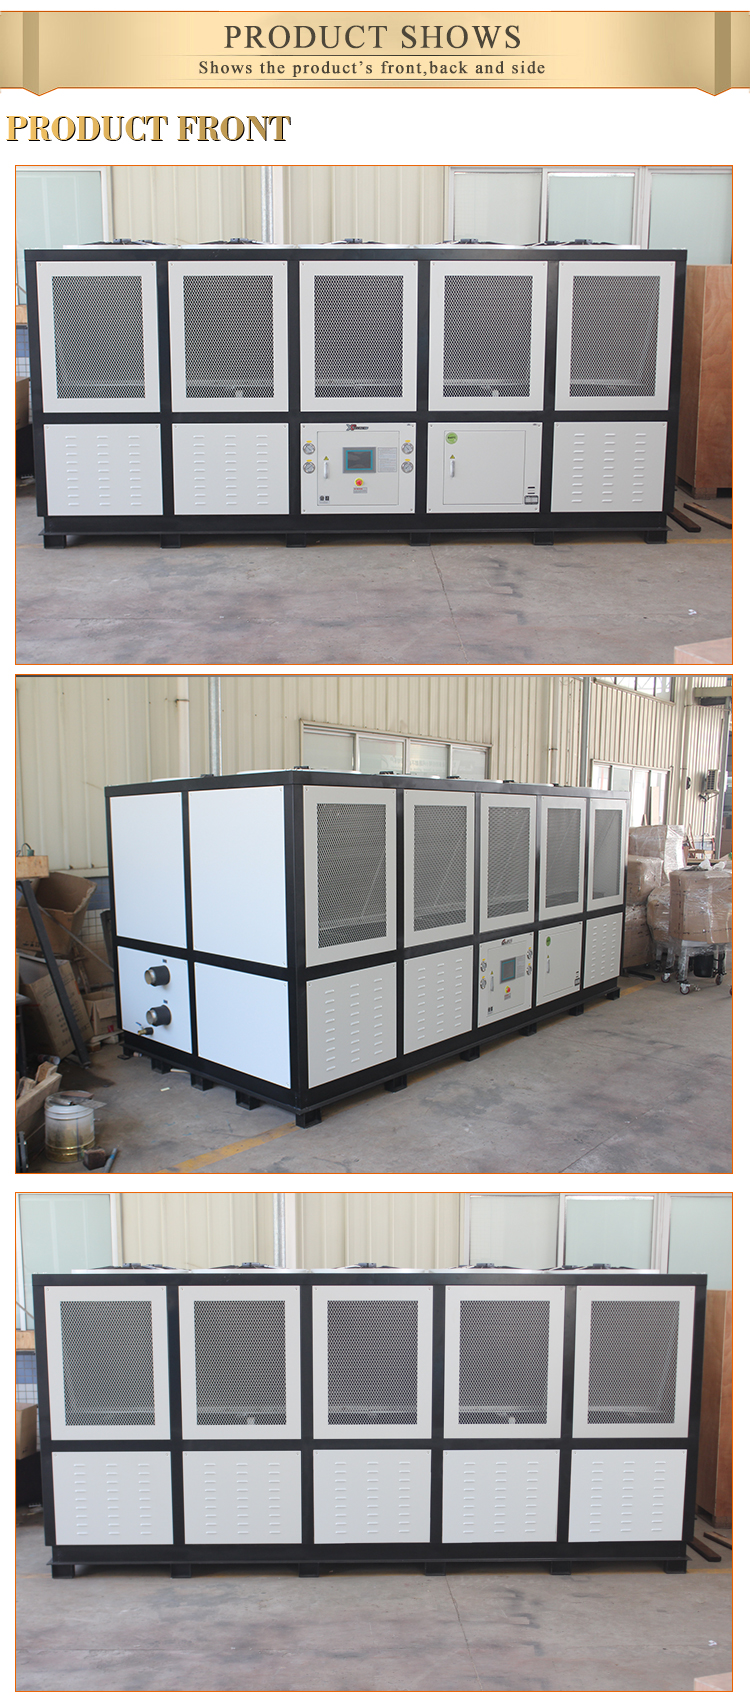 china manufacturer supplier low price water cooling chiller system unit injection extruder air cooled industrial chiller